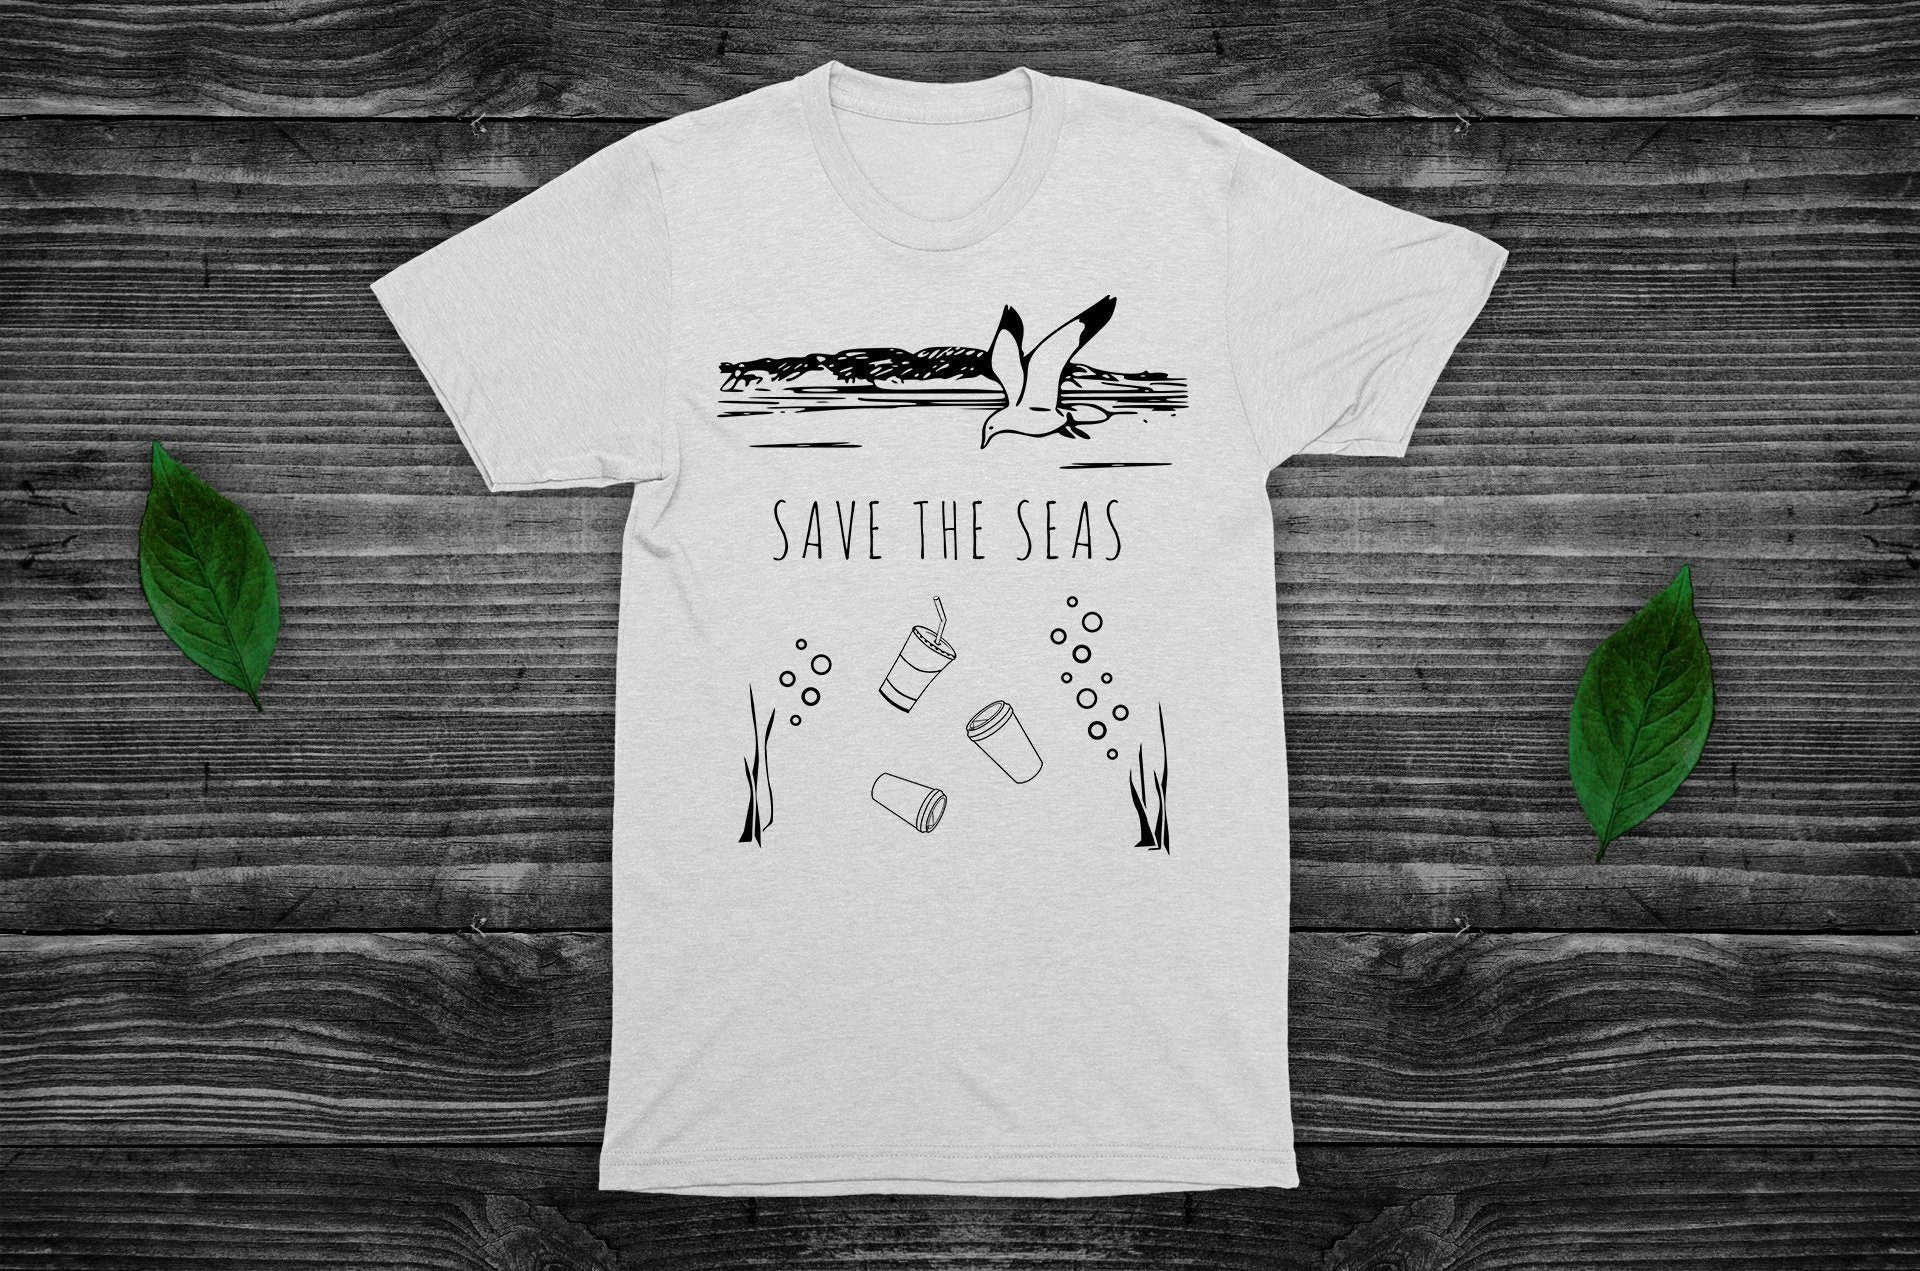 """Save The Seas"" Vegan T-Shirt - 100% Organic Cotton (Unisex) Clothing Vegan Original"